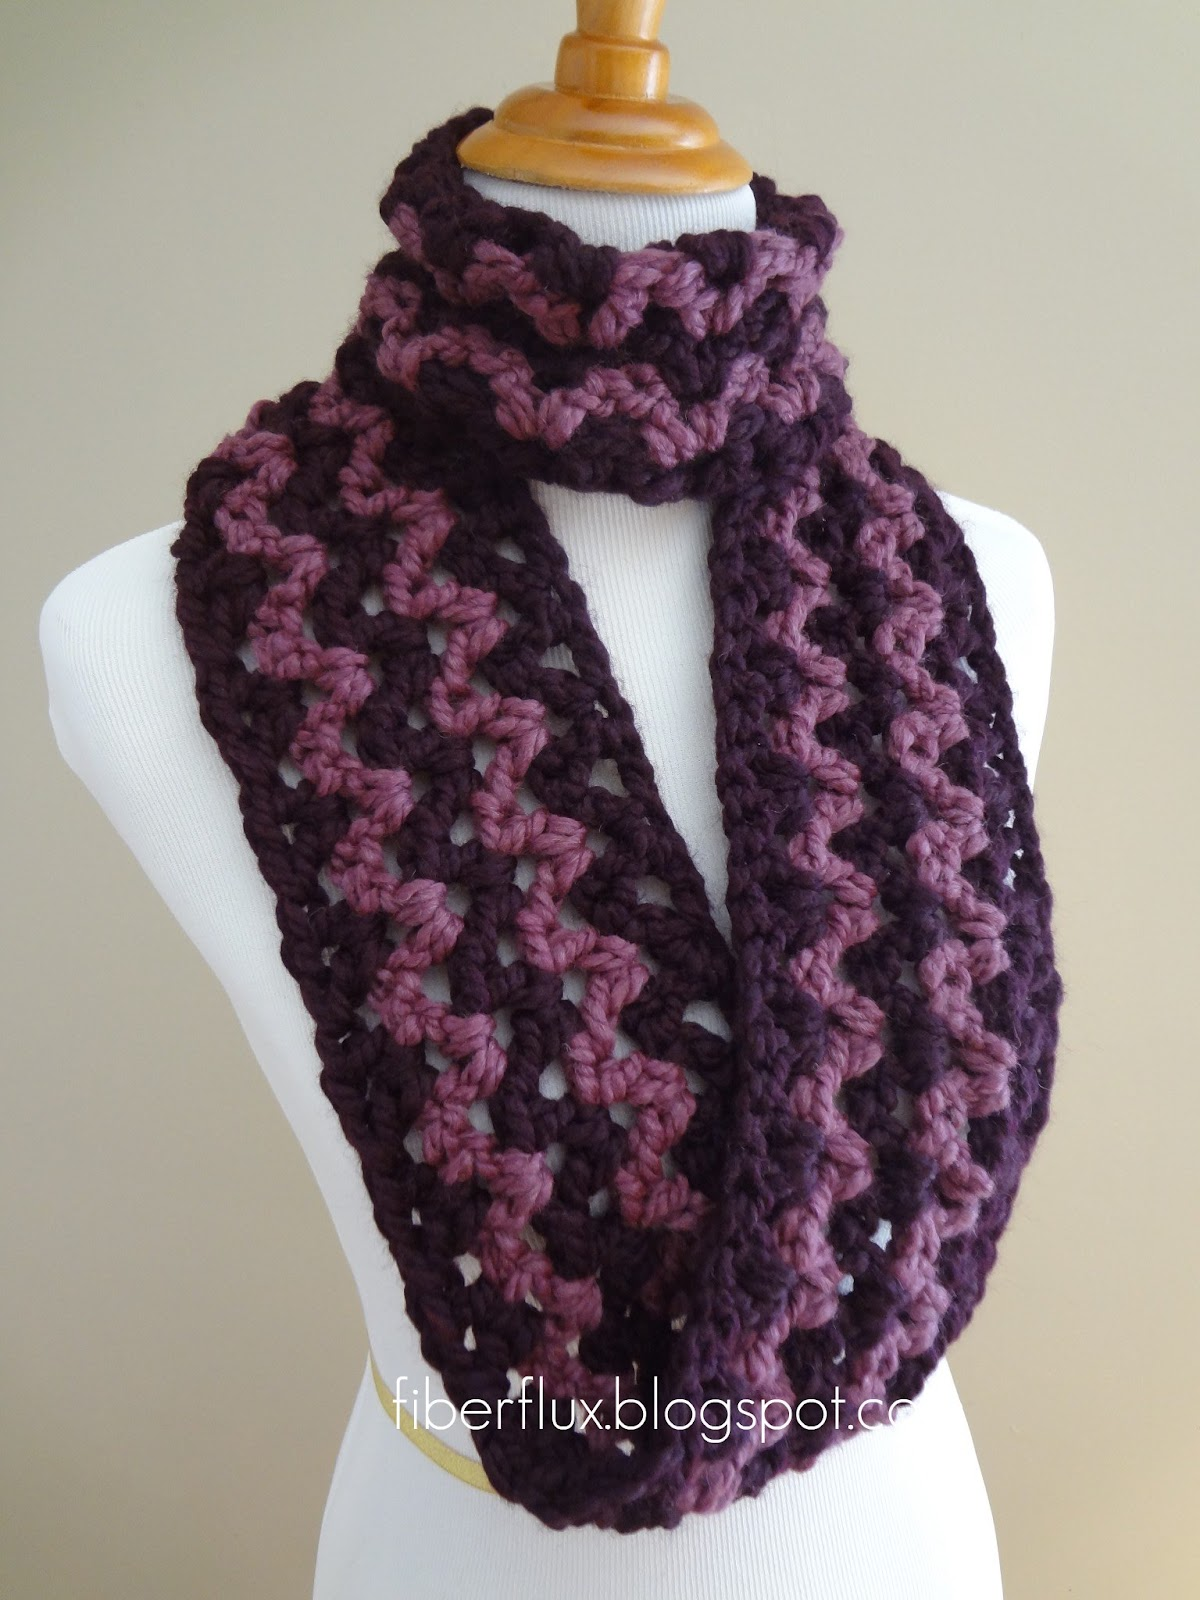 Free Crochet Patterns For Dressy Scarves : Fiber Flux: Free Crochet Pattern...Pinot Noir Infinity Scarf